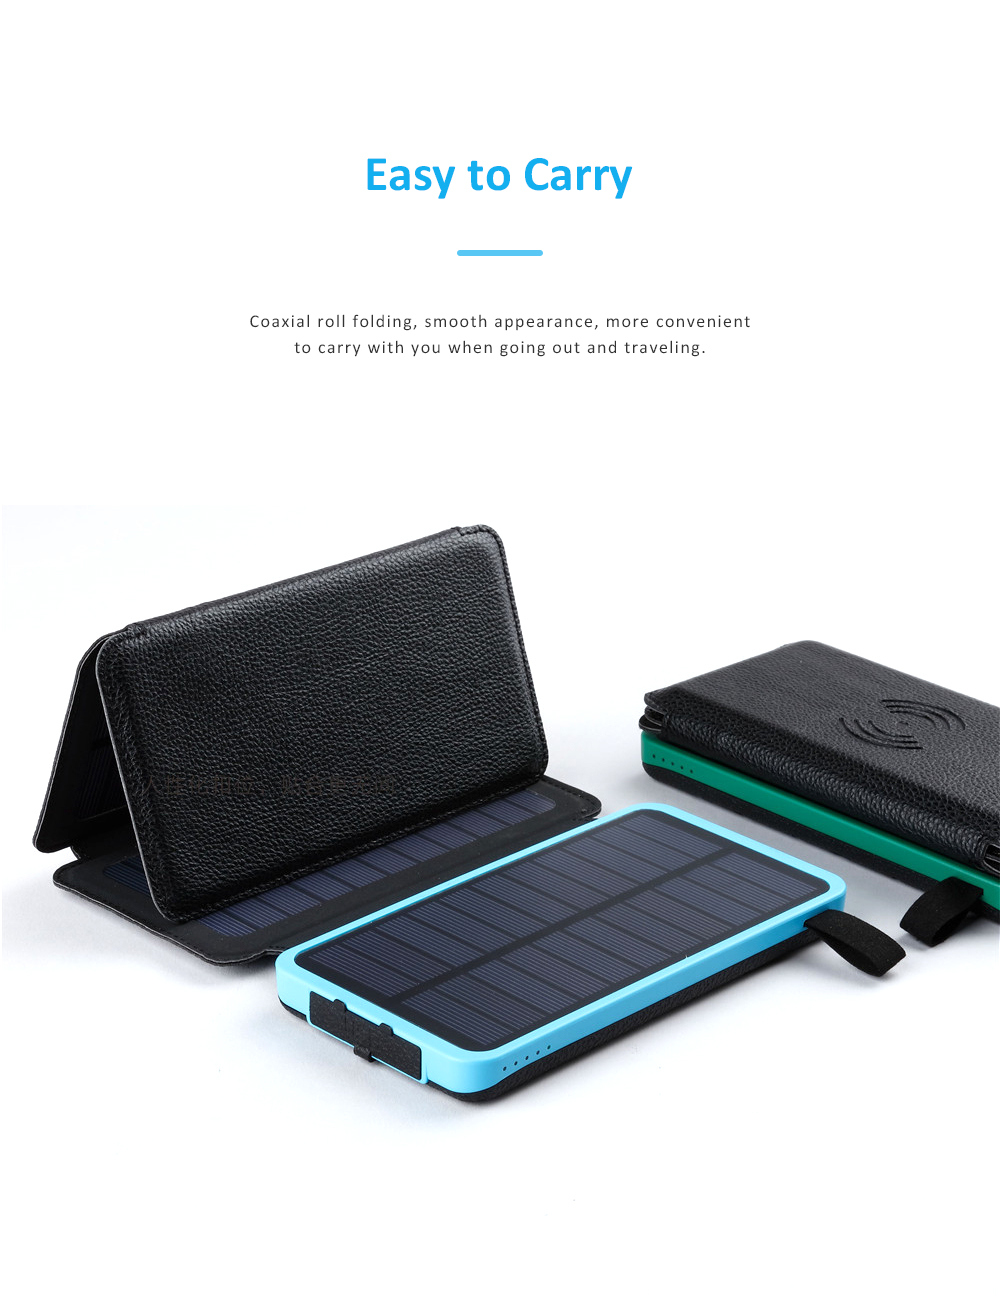 Wireless Charging Solar Charger Foldable Double USB Port Solar Power Bank with Flashlight and Compatible with Many Electronic Devices 3